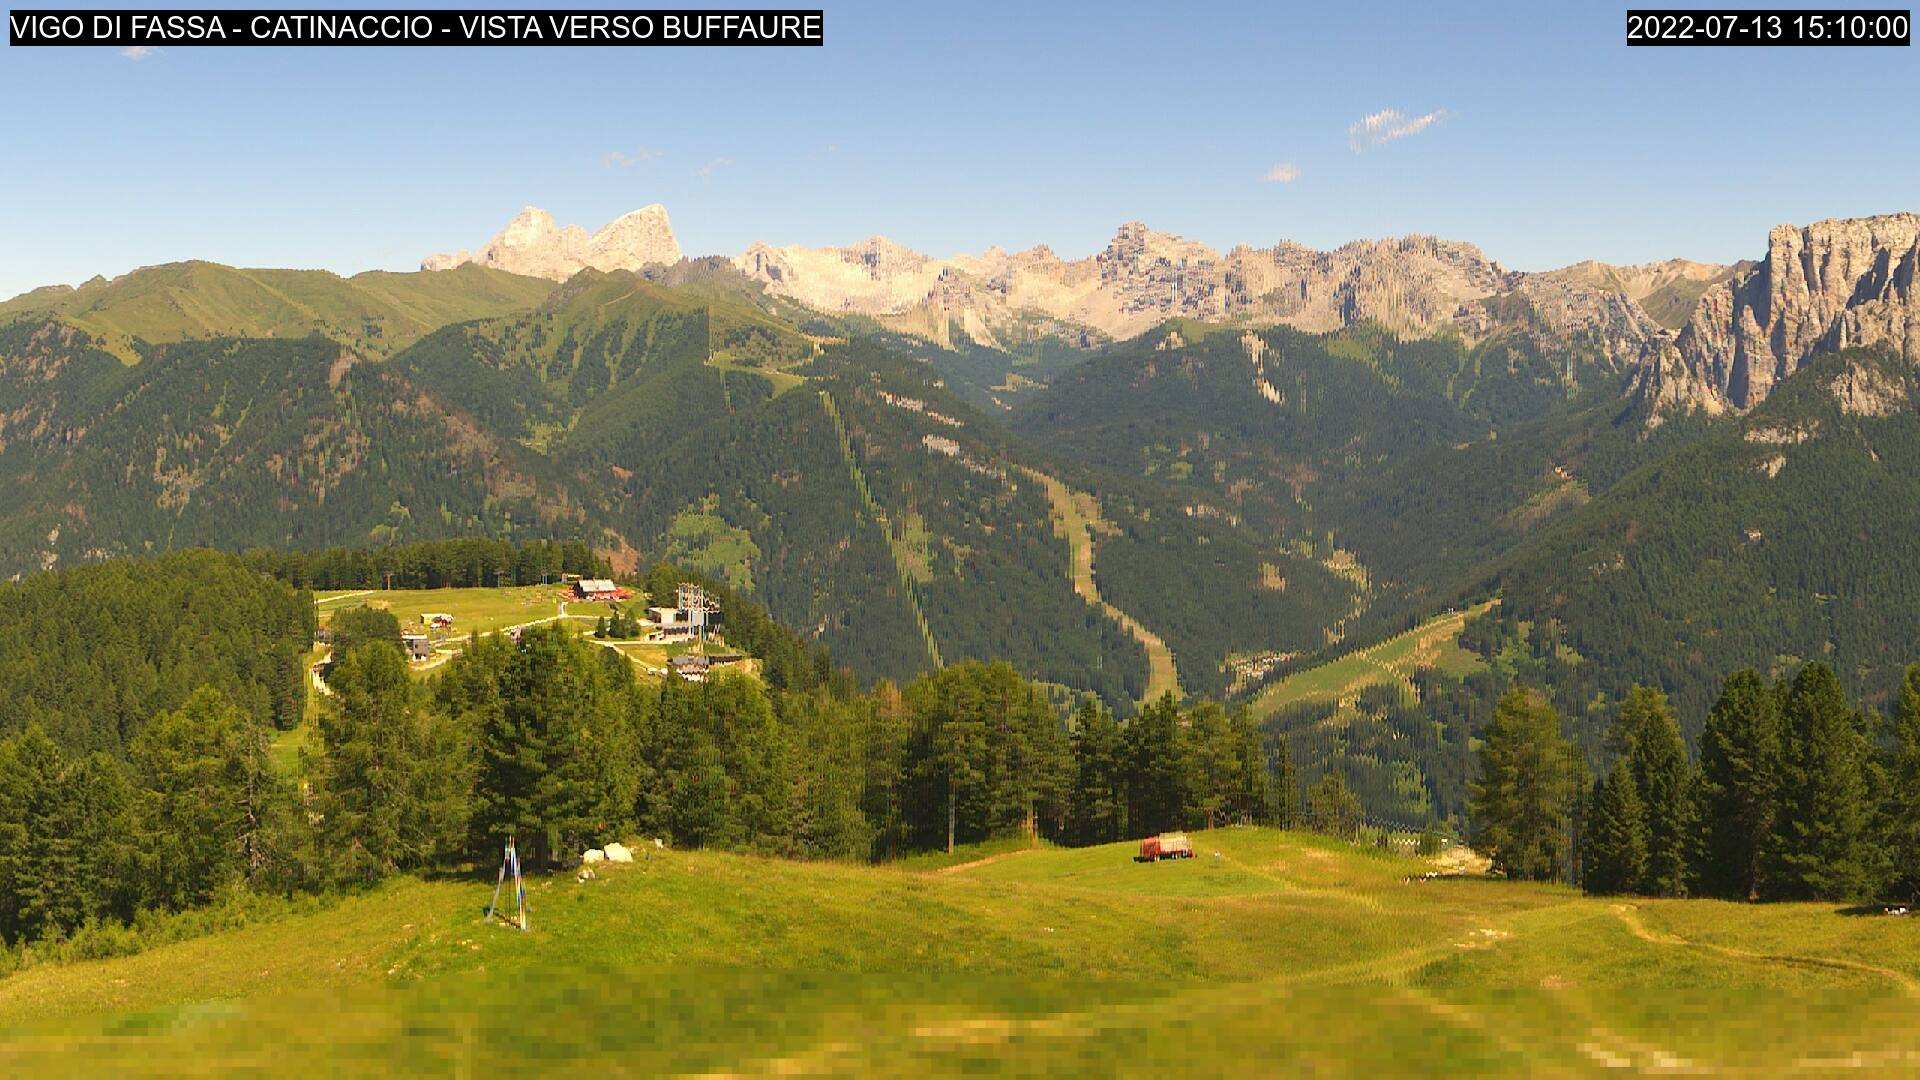 Webcam Vigo di Fassa - Ciampedìe - Pozza Buffaure - Altitude: 2,042 metresArea: Pra Martin Panoramic viewpoint: static webcam. View on the ski area Vigo-Catinaccio, from